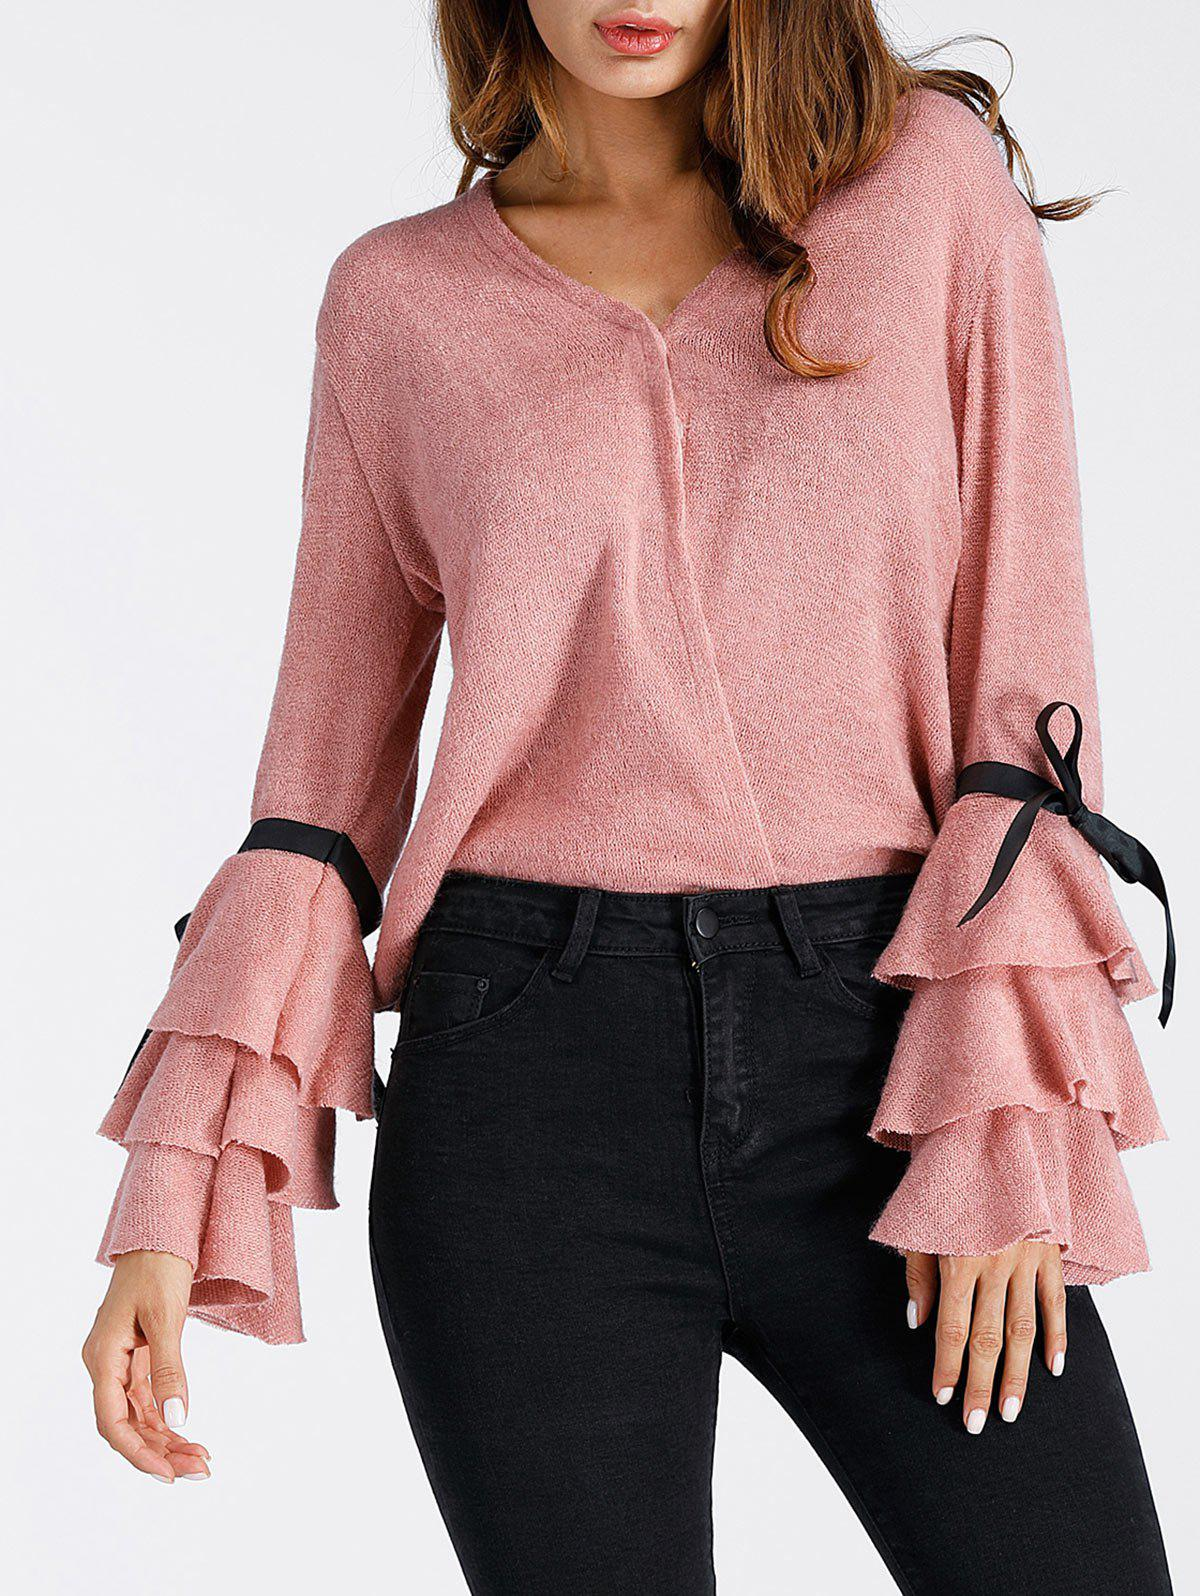 V Neck Layered Bell Sleeve SweaterWOMEN<br><br>Size: XL; Color: PINK; Type: Pullovers; Material: Acrylic,Polyester; Sleeve Length: Full; Collar: V-Neck; Style: Fashion; Pattern Type: Solid; Season: Fall,Spring; Weight: 0.2700kg; Package Contents: 1 x Sweater;